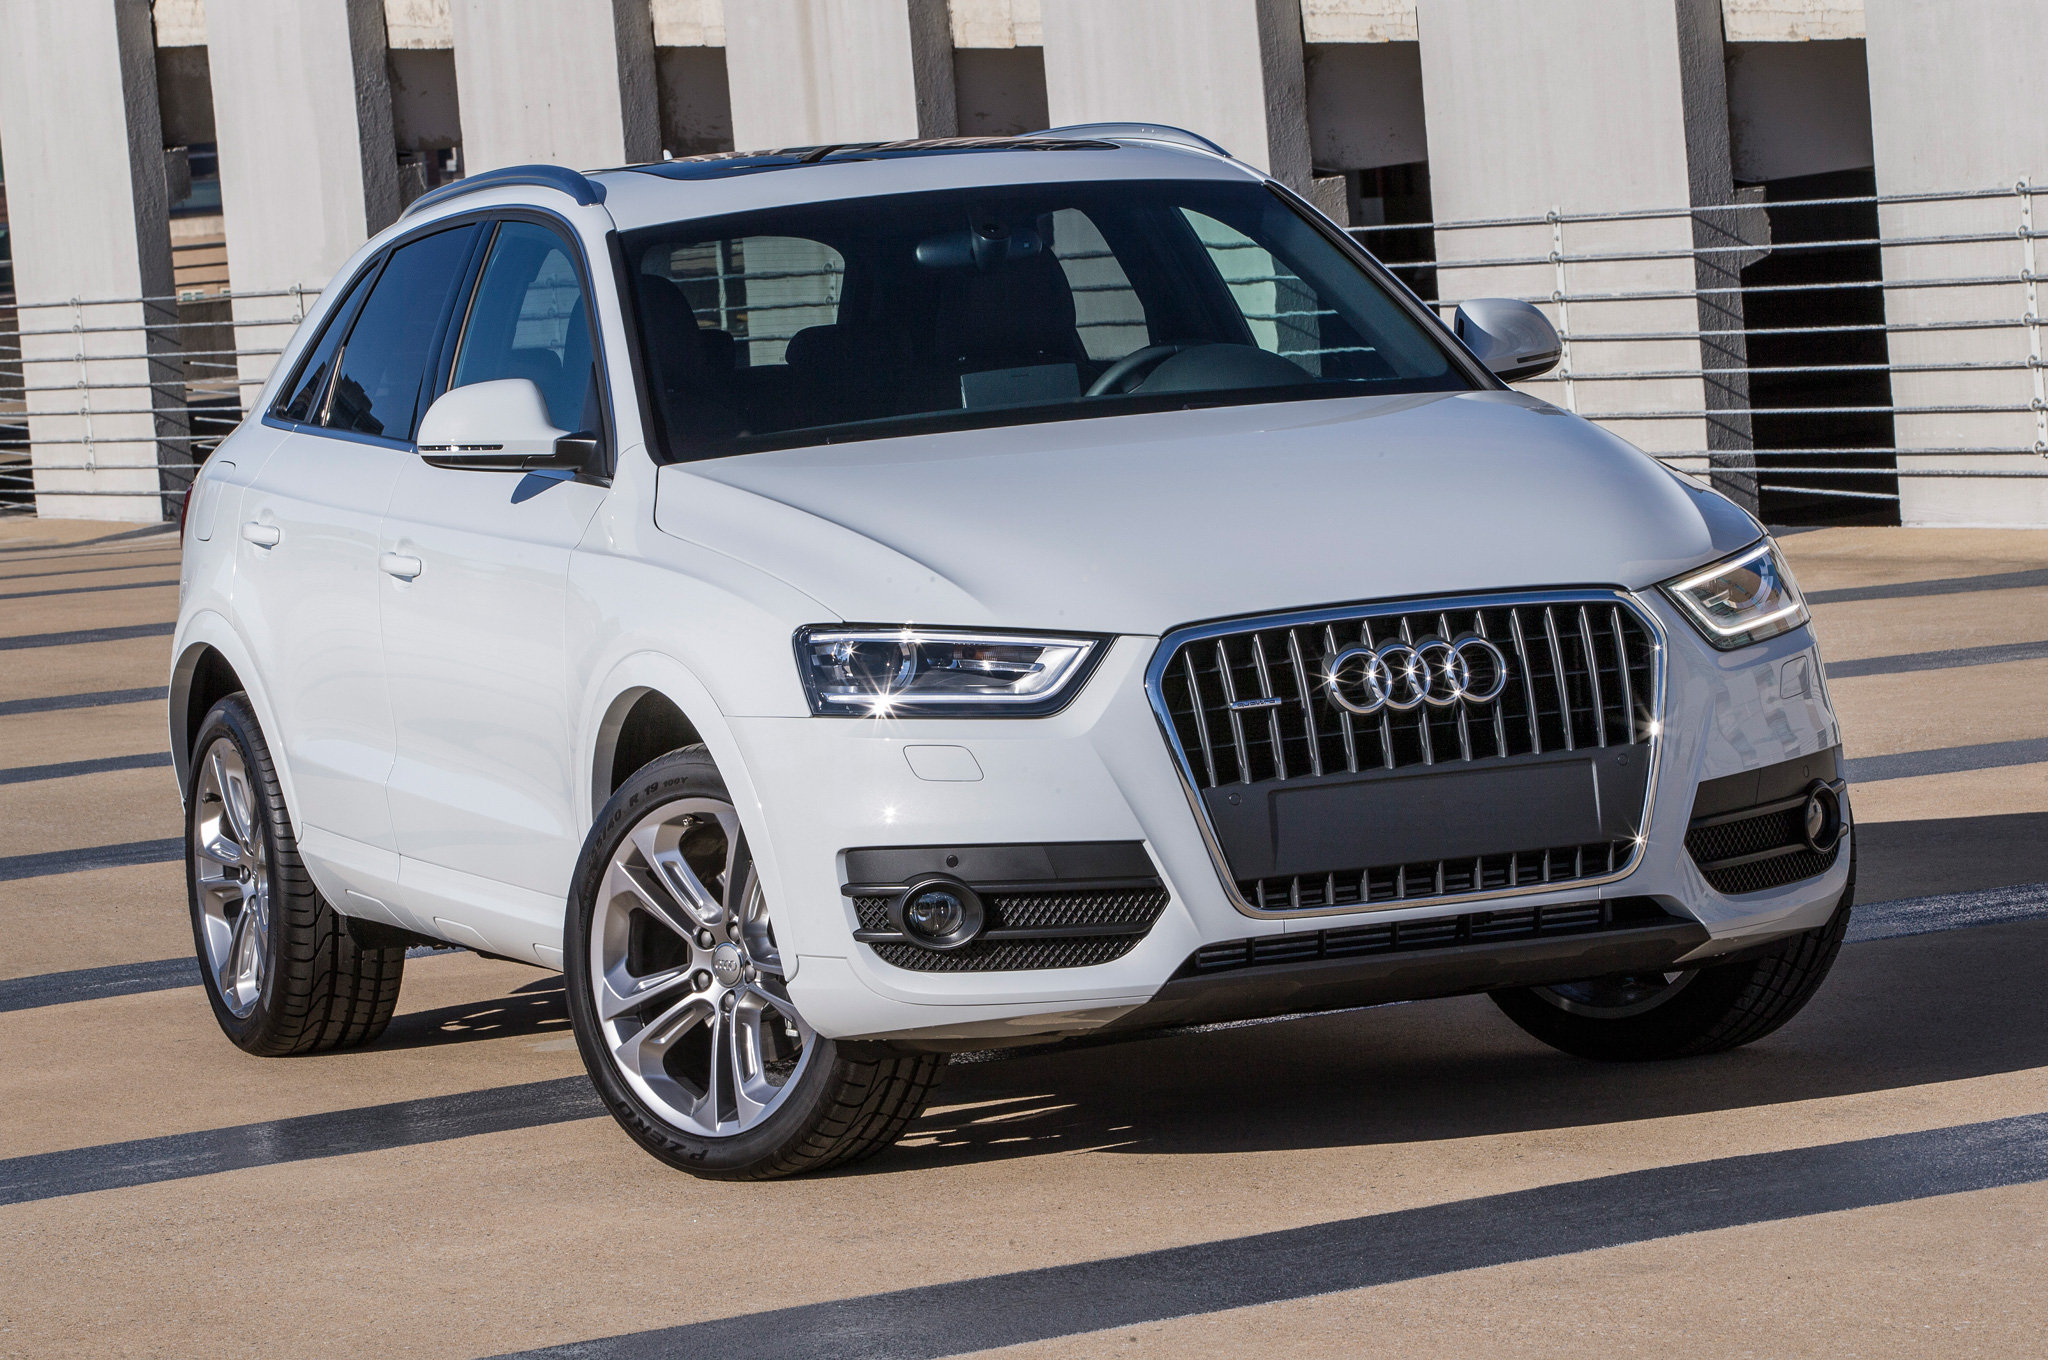 2015 Audi Q3 White Exterior View (View 12 of 21)